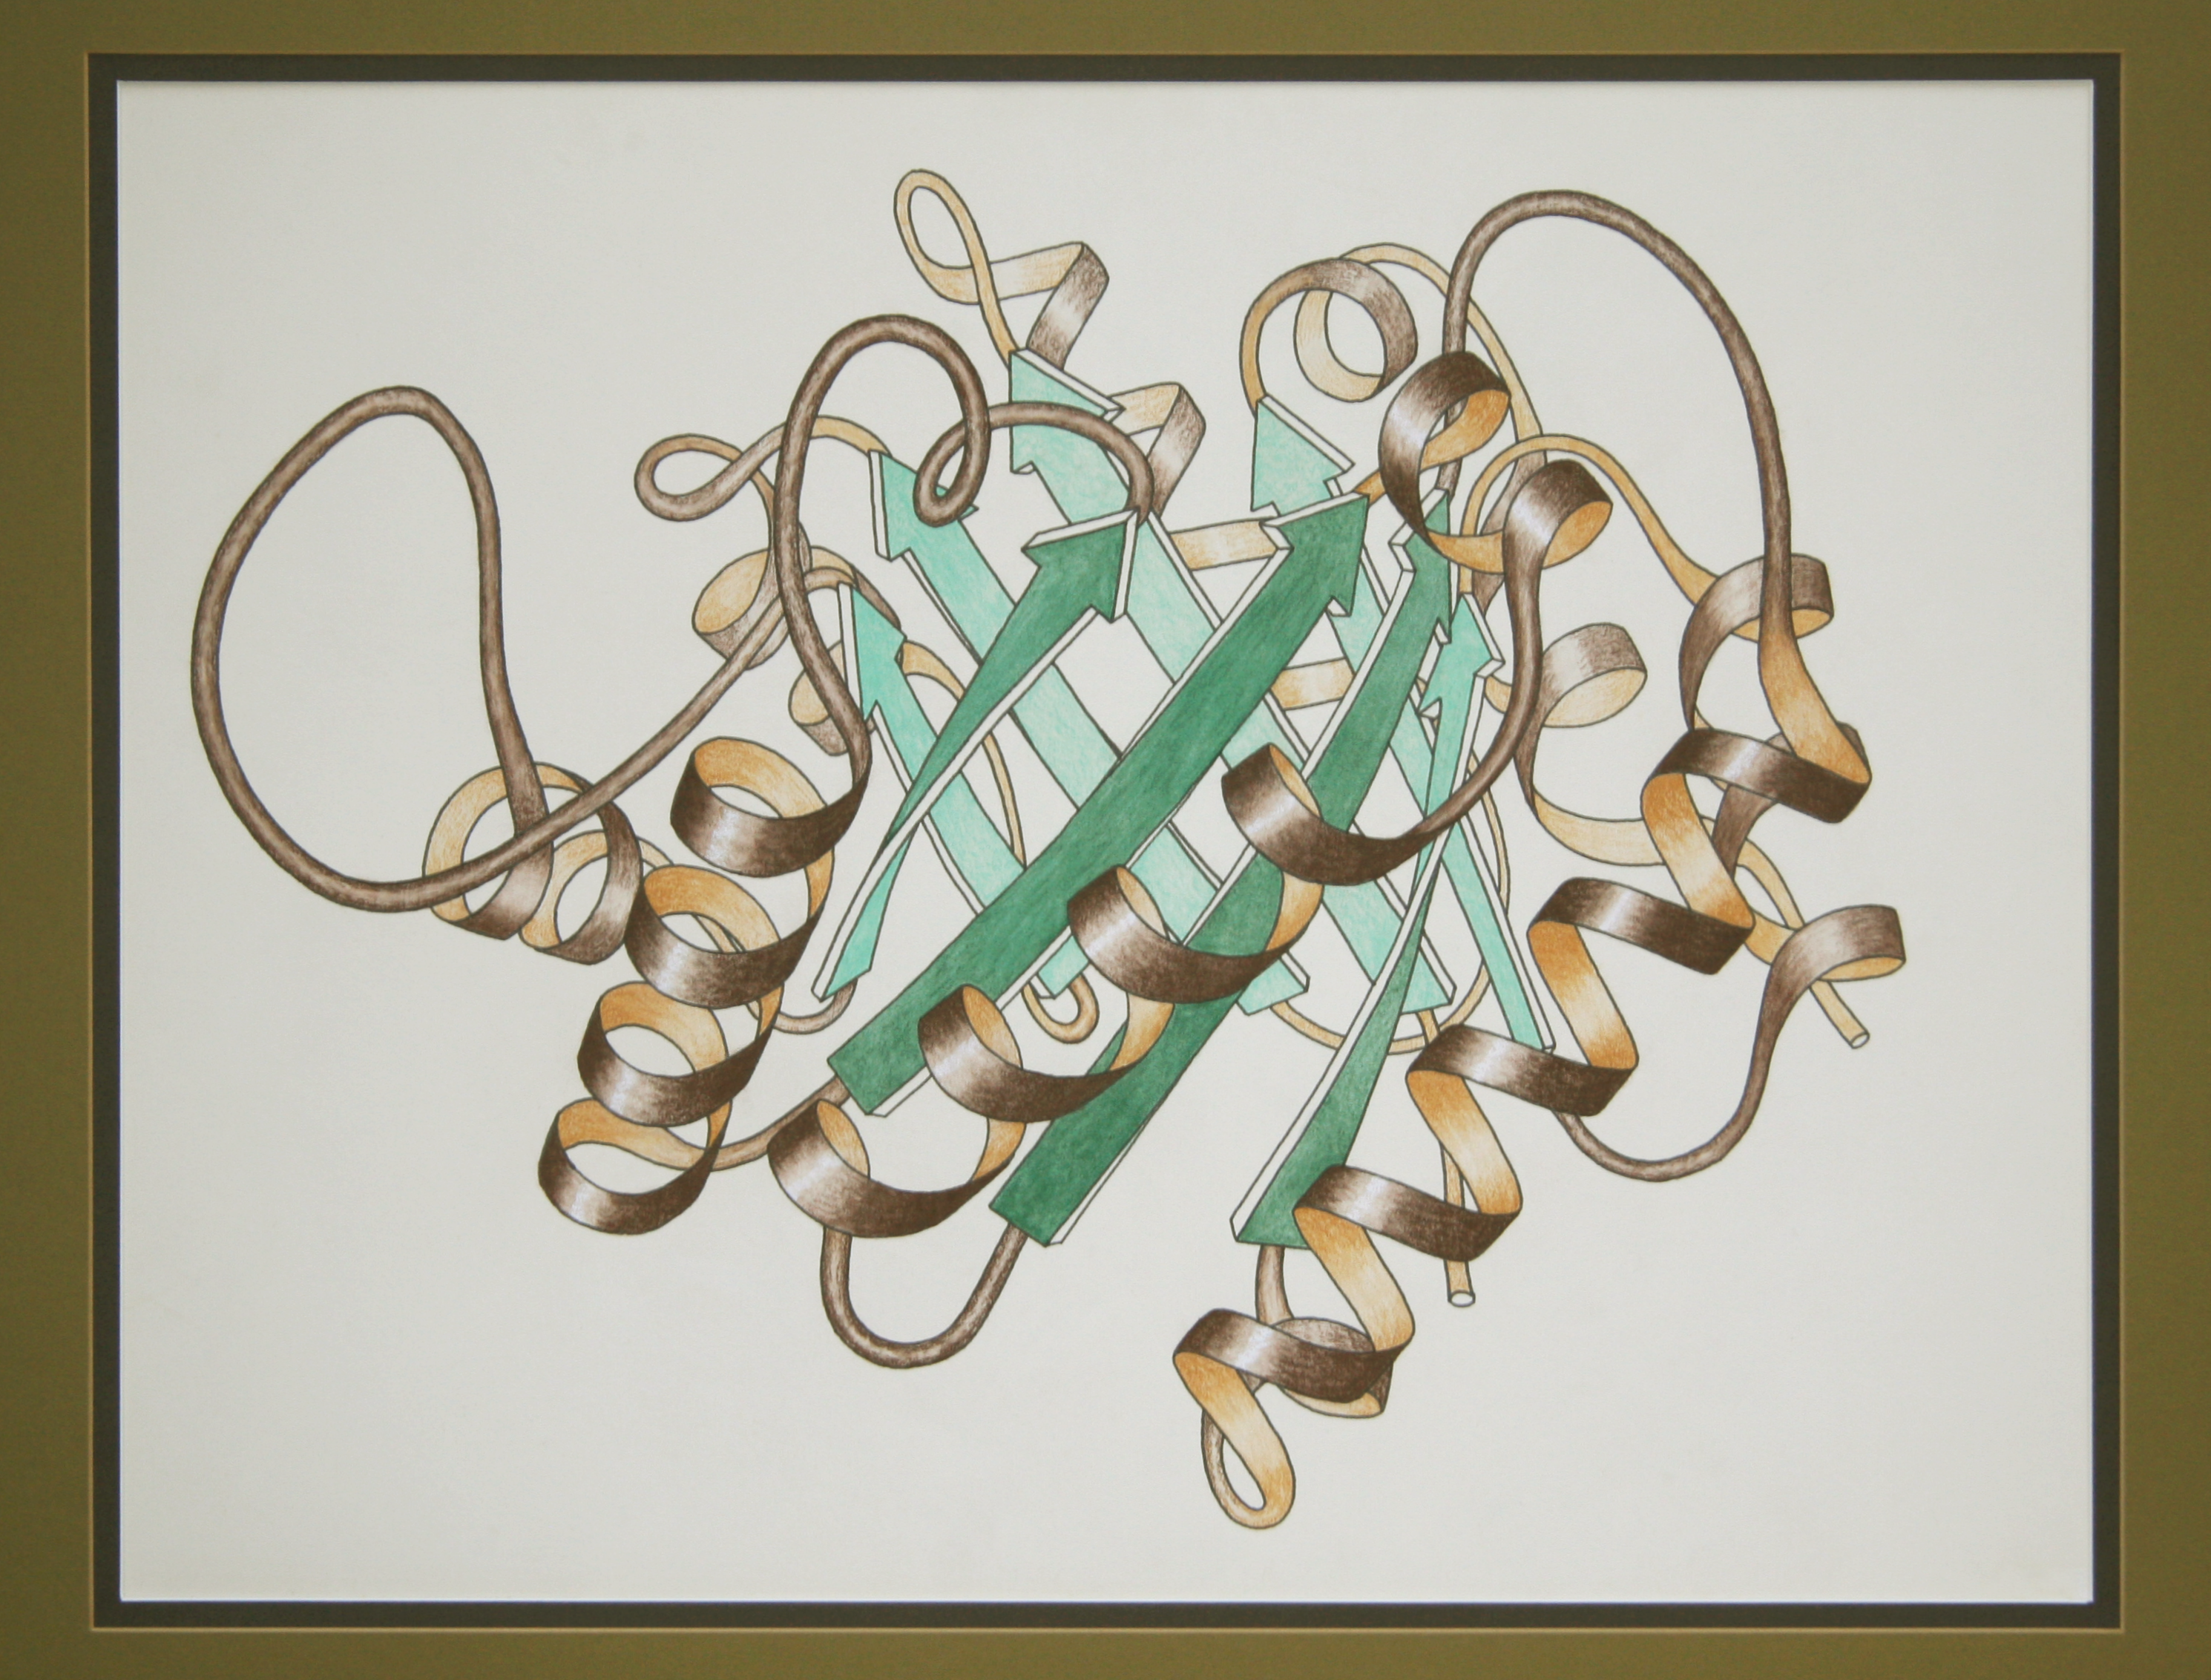 Drawn ribbon Of by triose (PDB: drawn